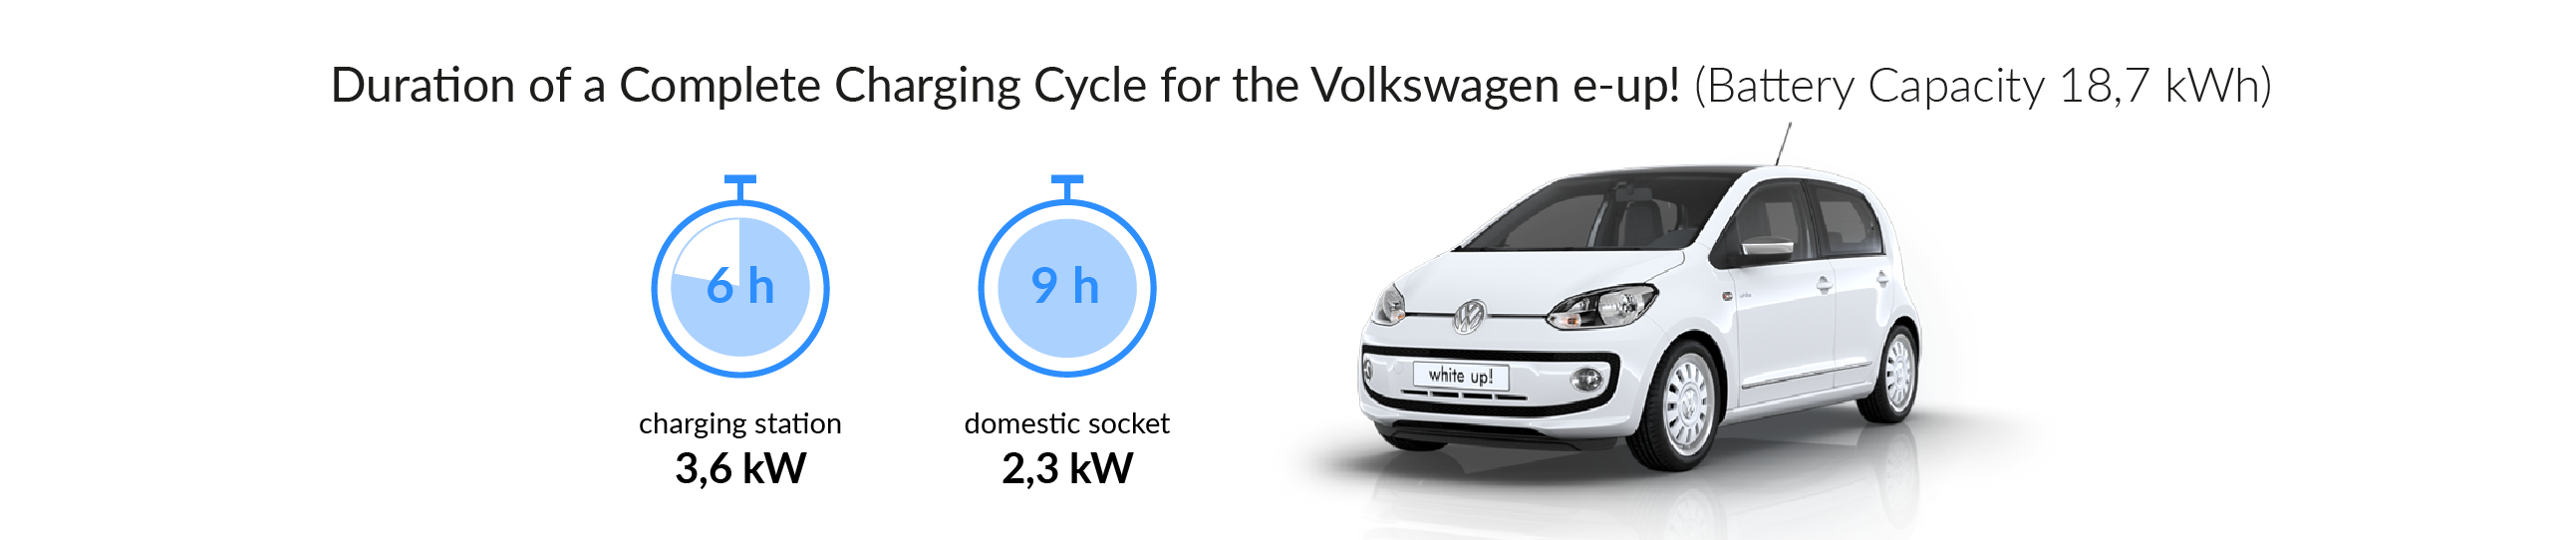 Charging time for your Volkswagen e-up!